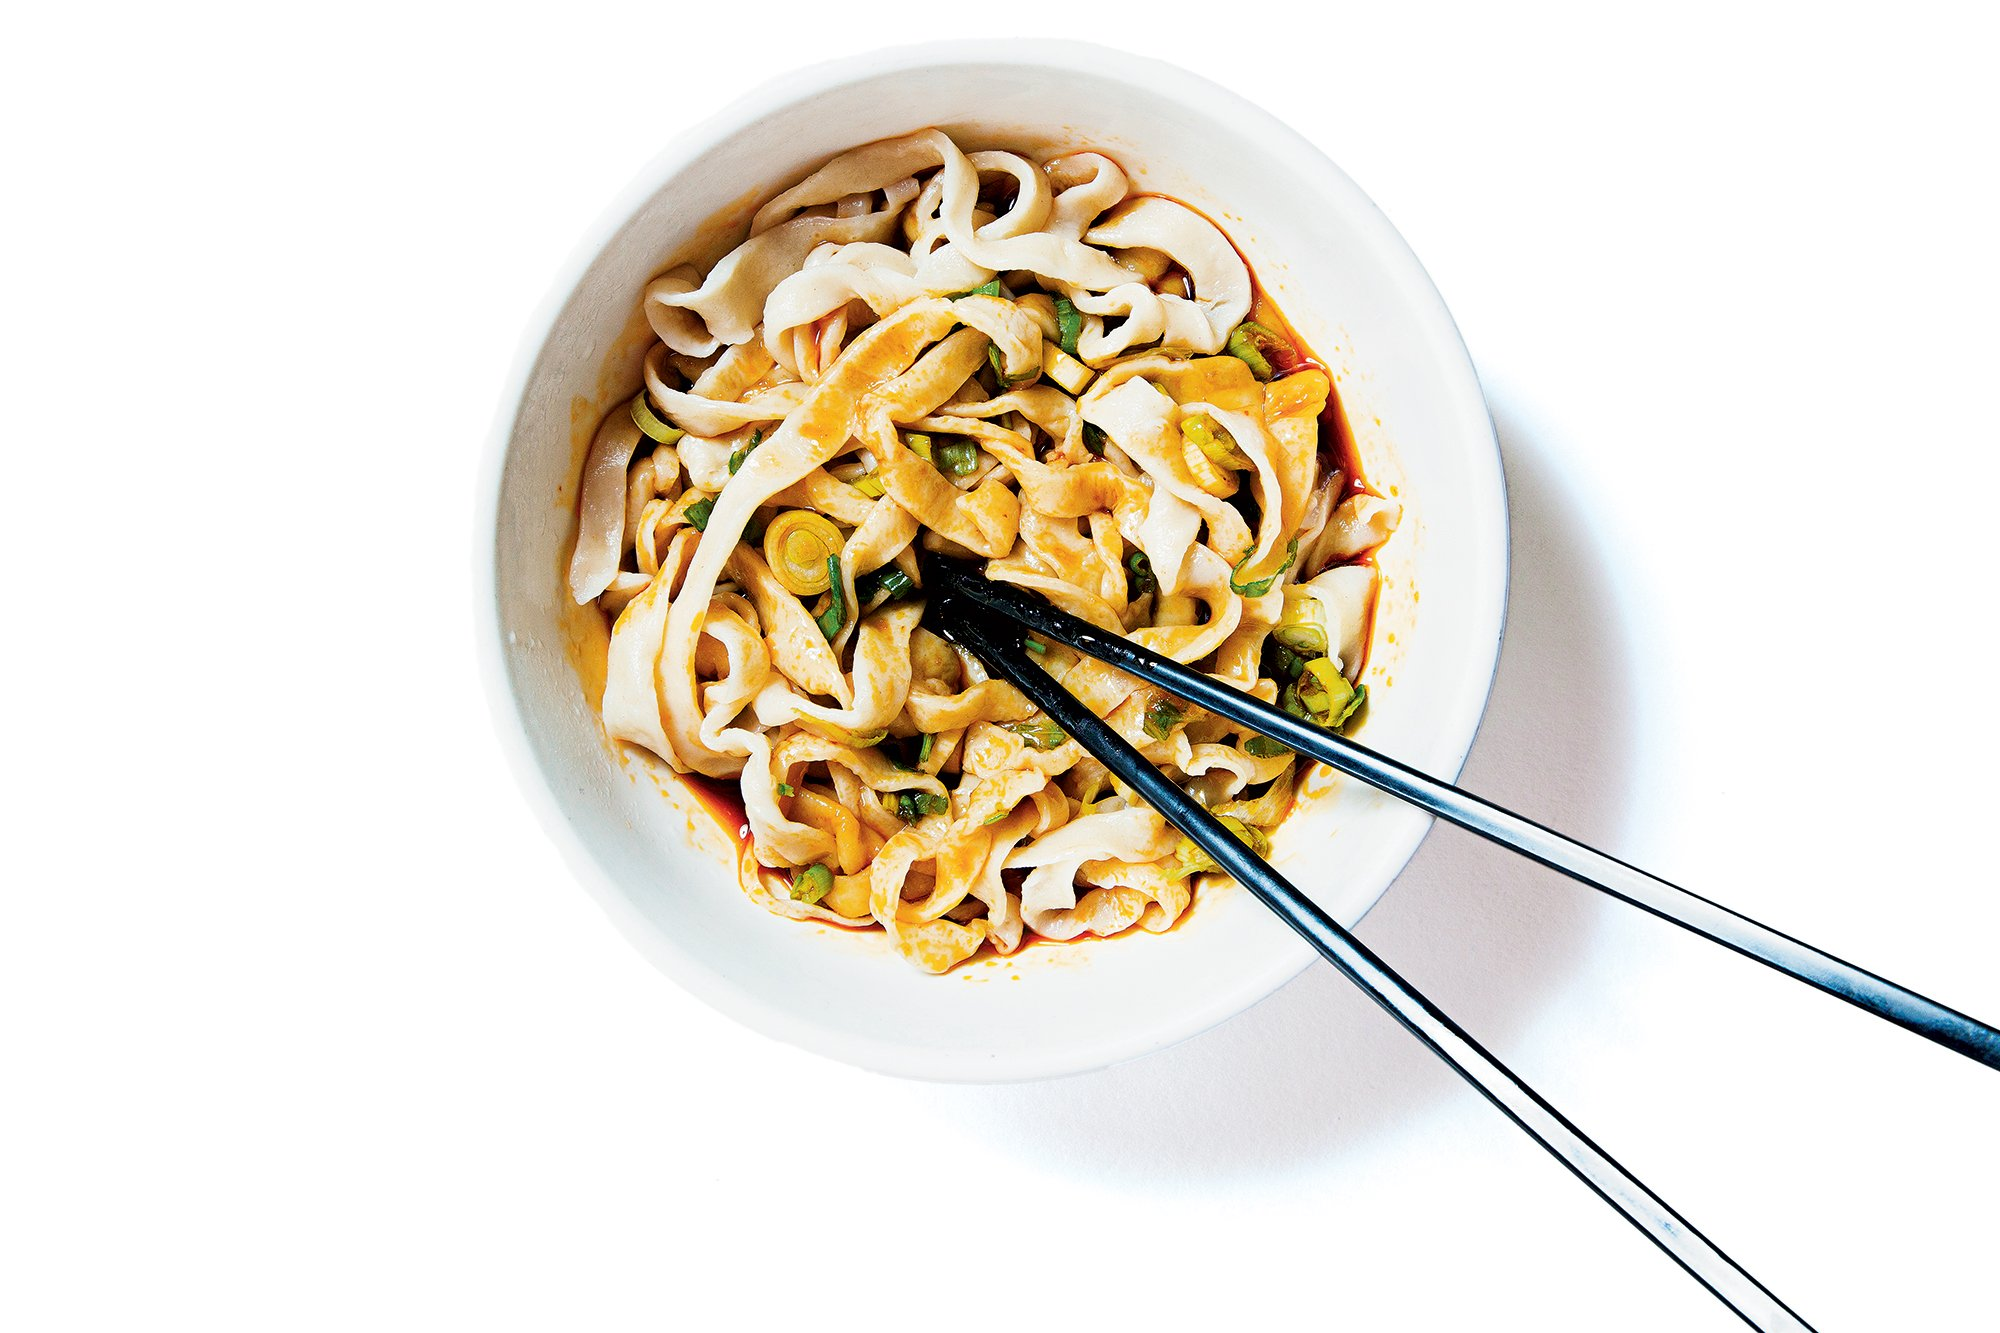 Hot-and-sour noodles at A&J. Photograph by Scott Suchman.